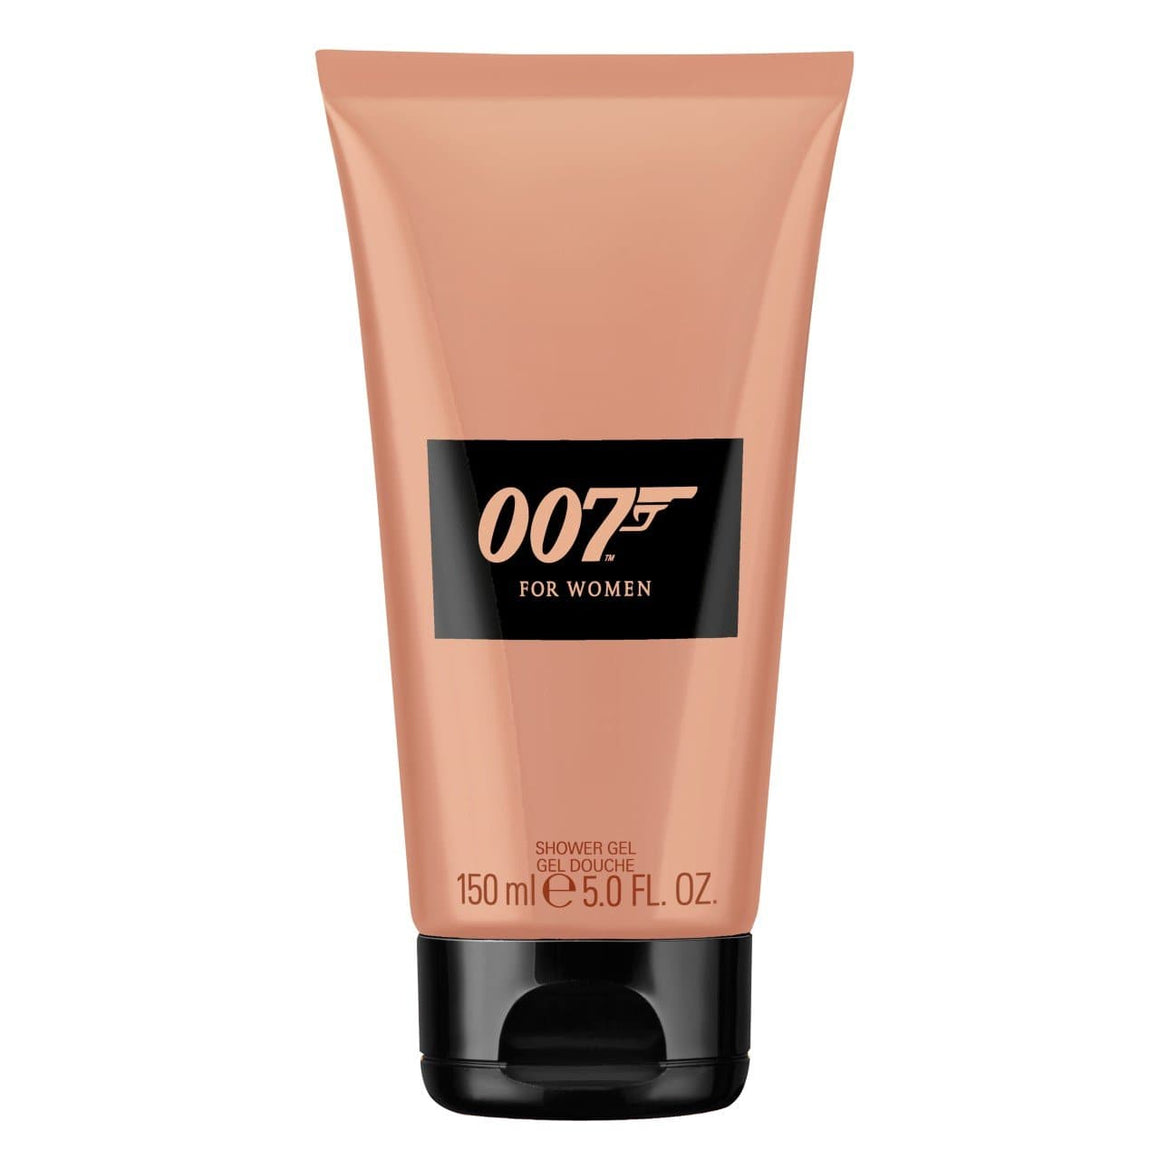 007 For Women Fragranced Shower Gel (150ml) - 007STORE